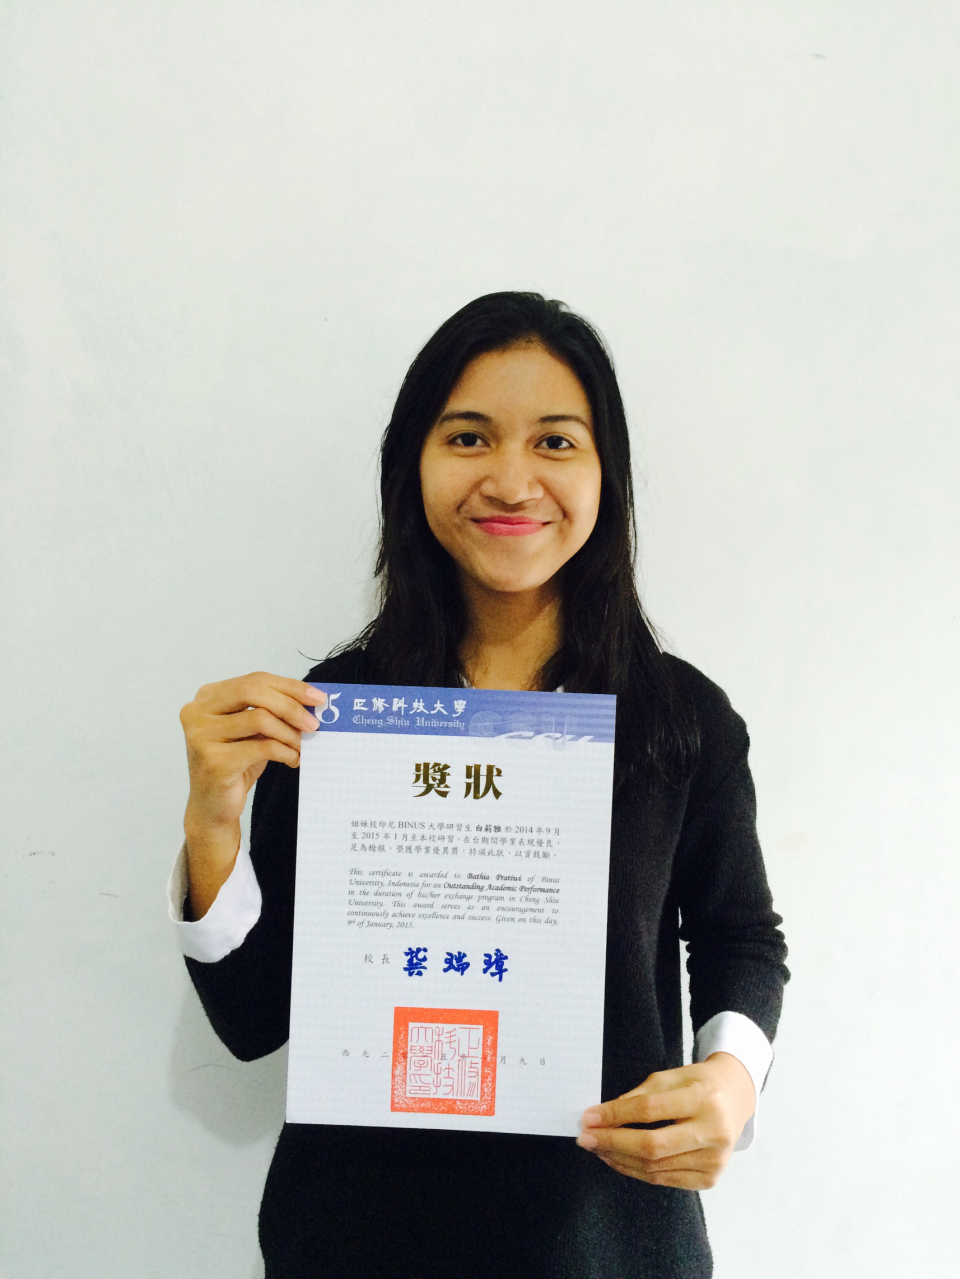 Bathia Pratiwi, Outstanding Academic Performance